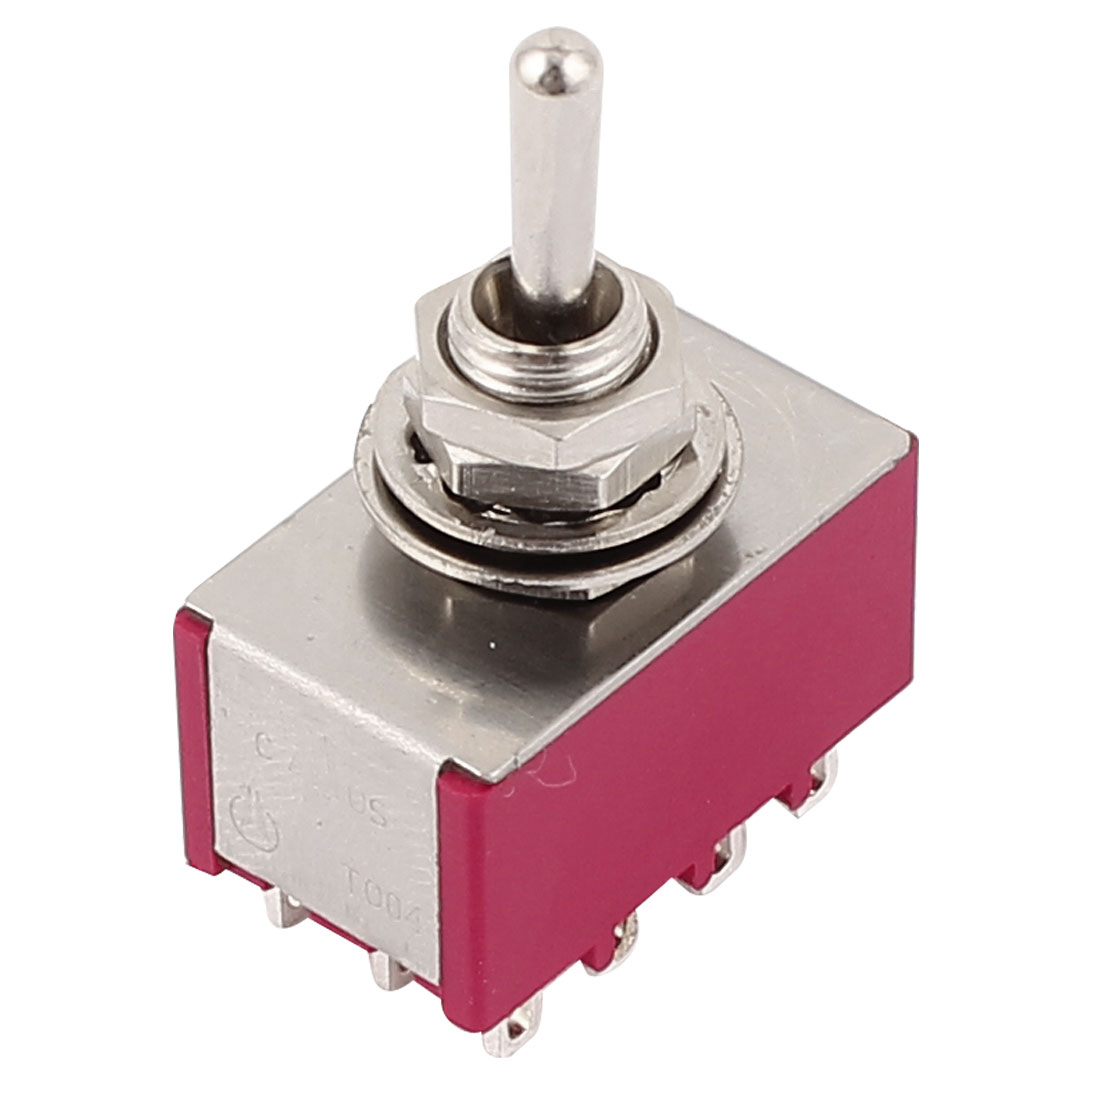 AC 250V/120V 2A/5A 4PDT ON/OFF/ON 3 Positions 12 Pin Electric Toggle Switch Red